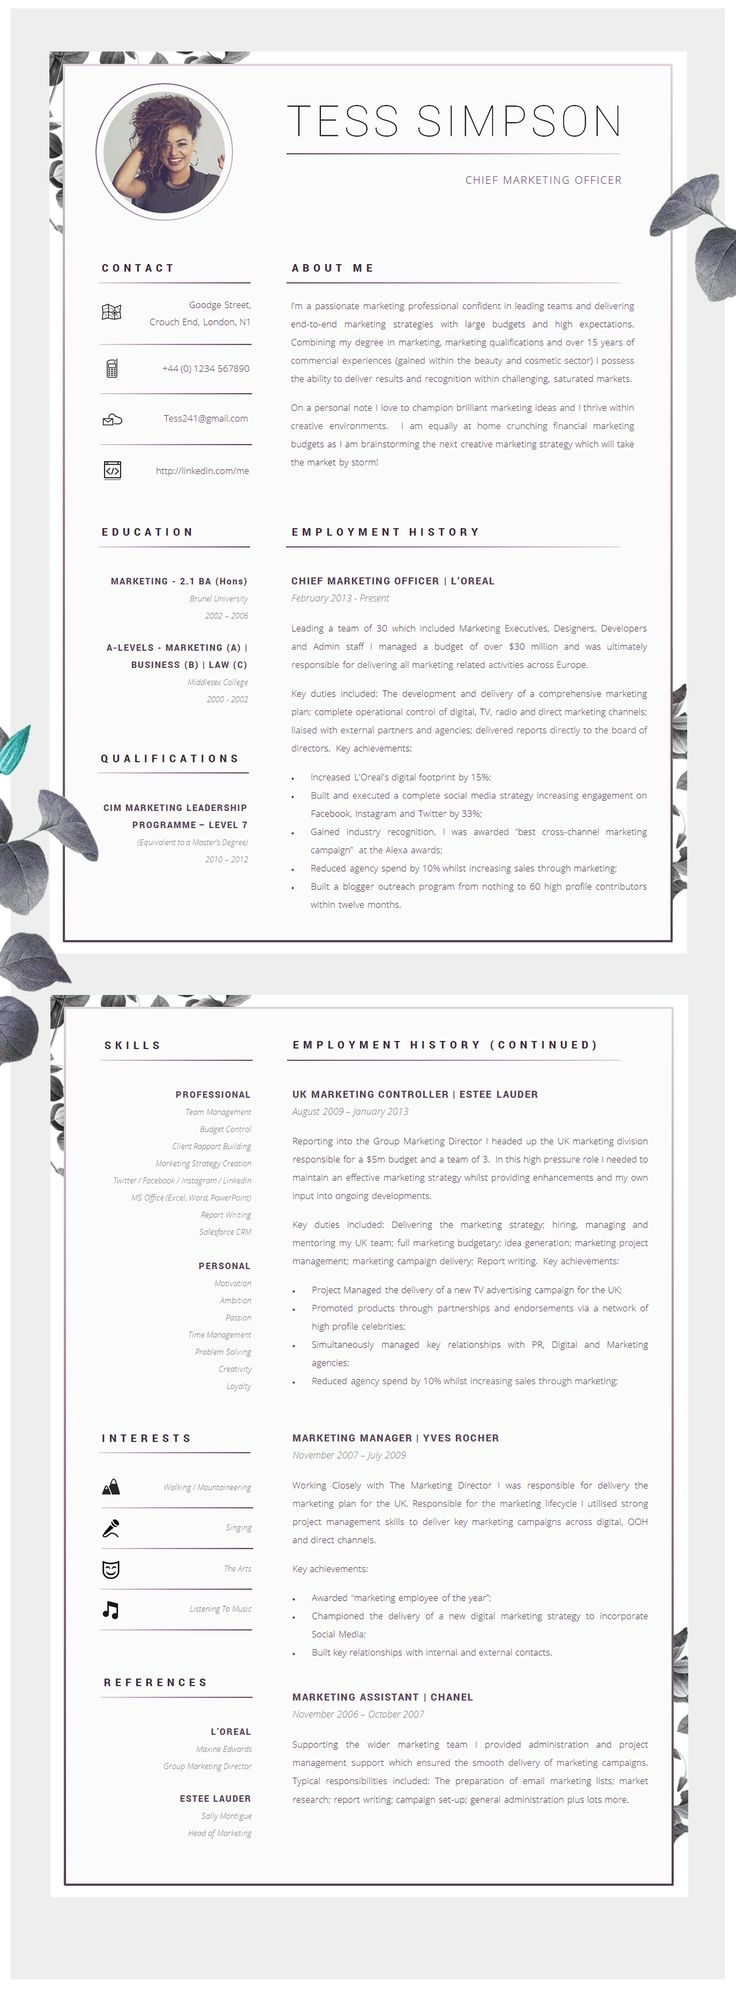 resume Business Resume Design 190 best resume design layouts images on pinterest cv template matching cover letter job search